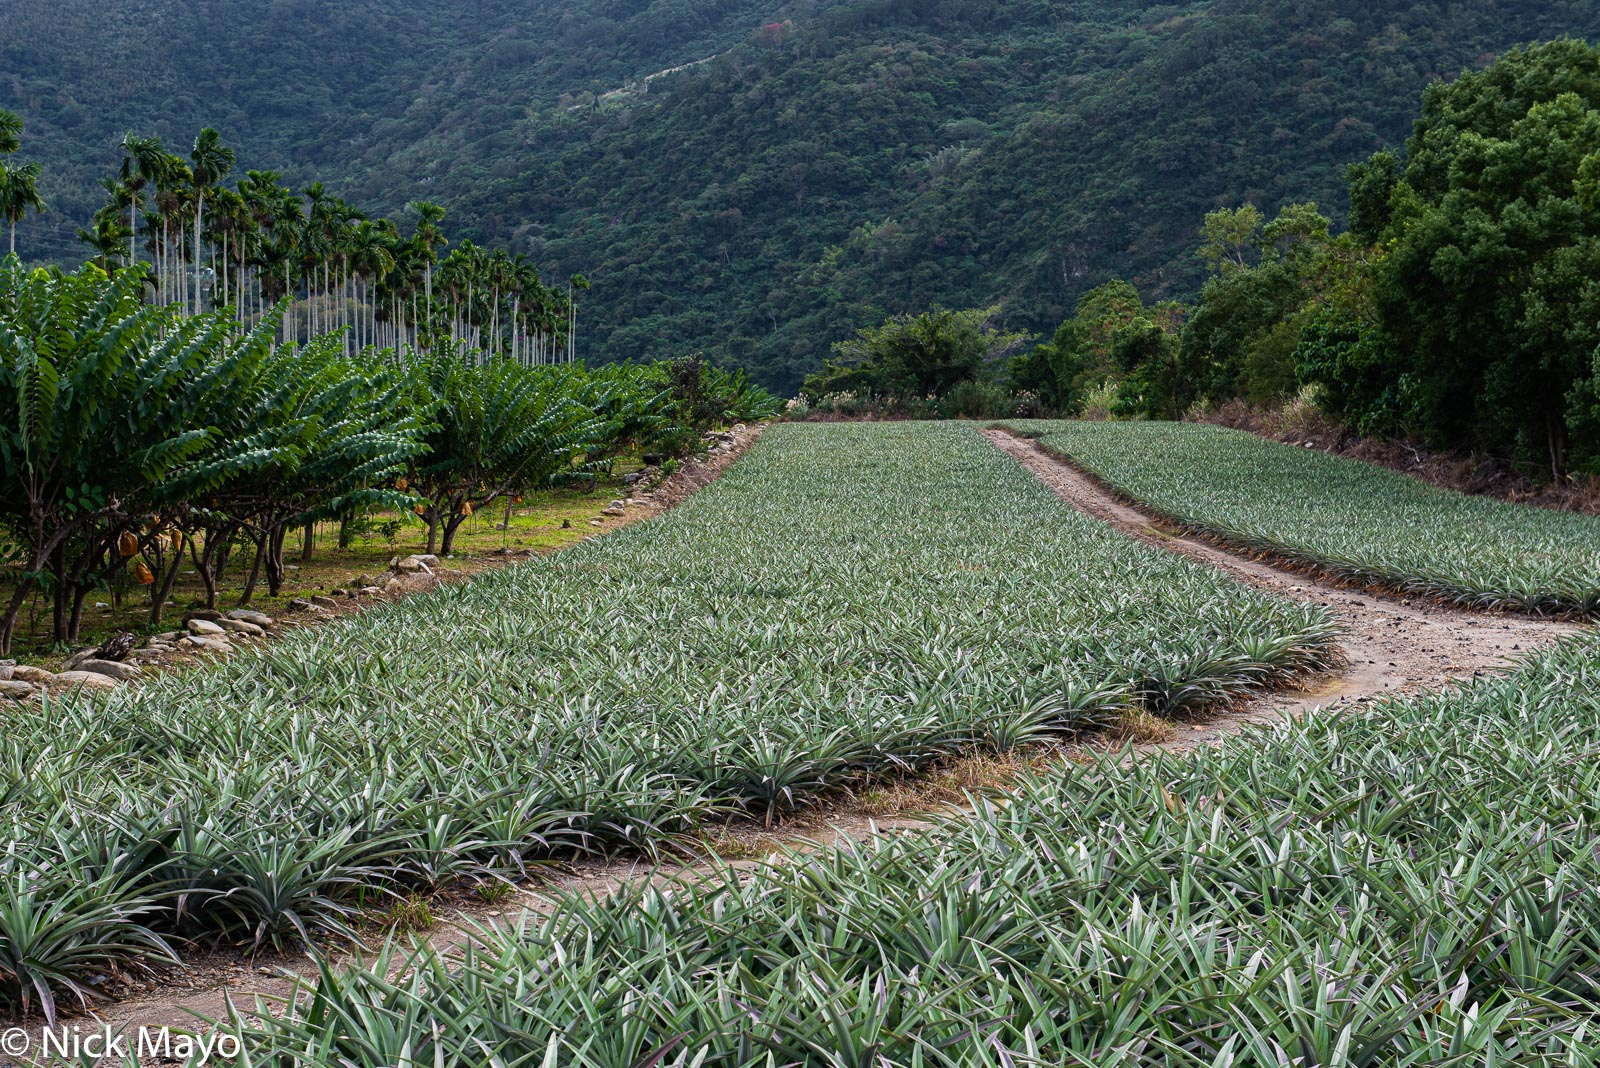 A pineapple plantation fringed by fruit and betel trees at Yanping in Taitung County.